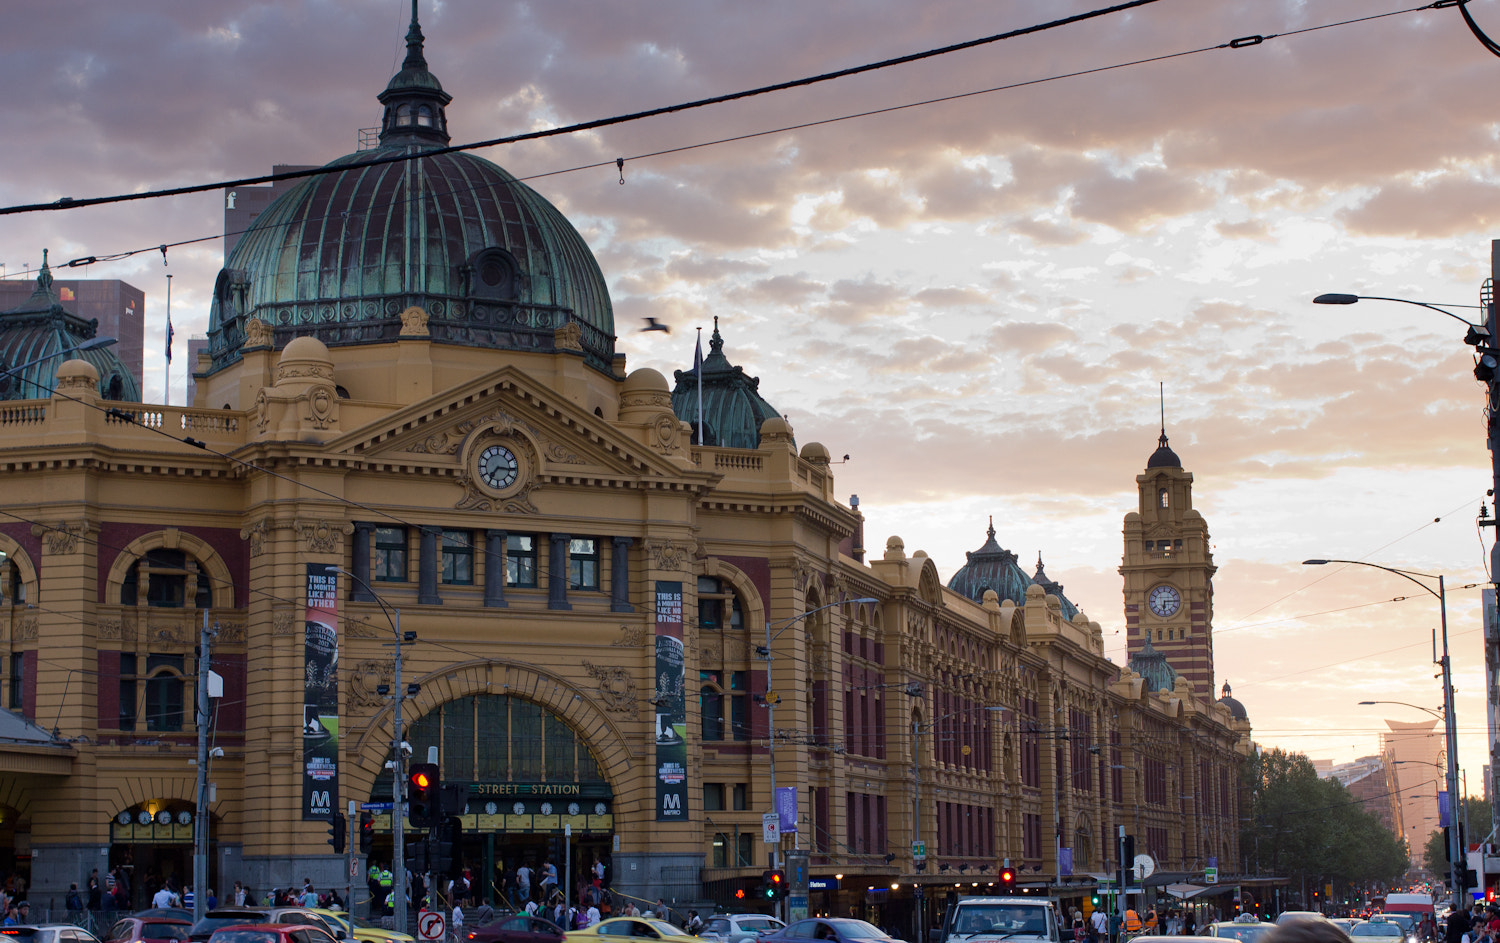 Photograph Flinders street station, Melbourne by Edib Unal on 500px